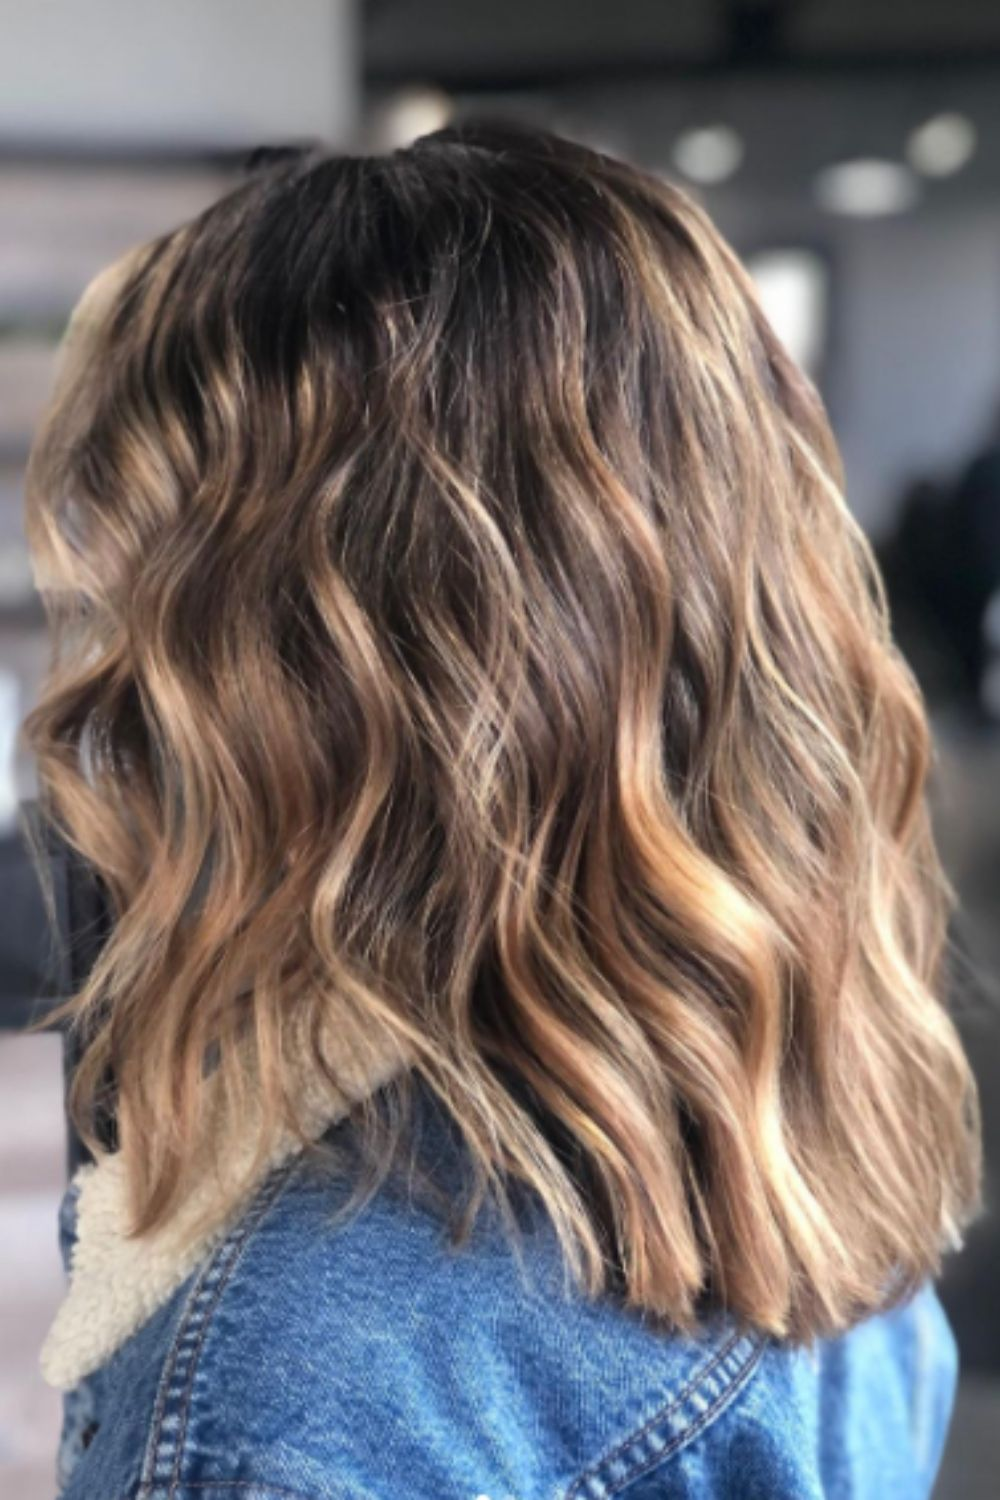 How to style medium length hairstyles for women?